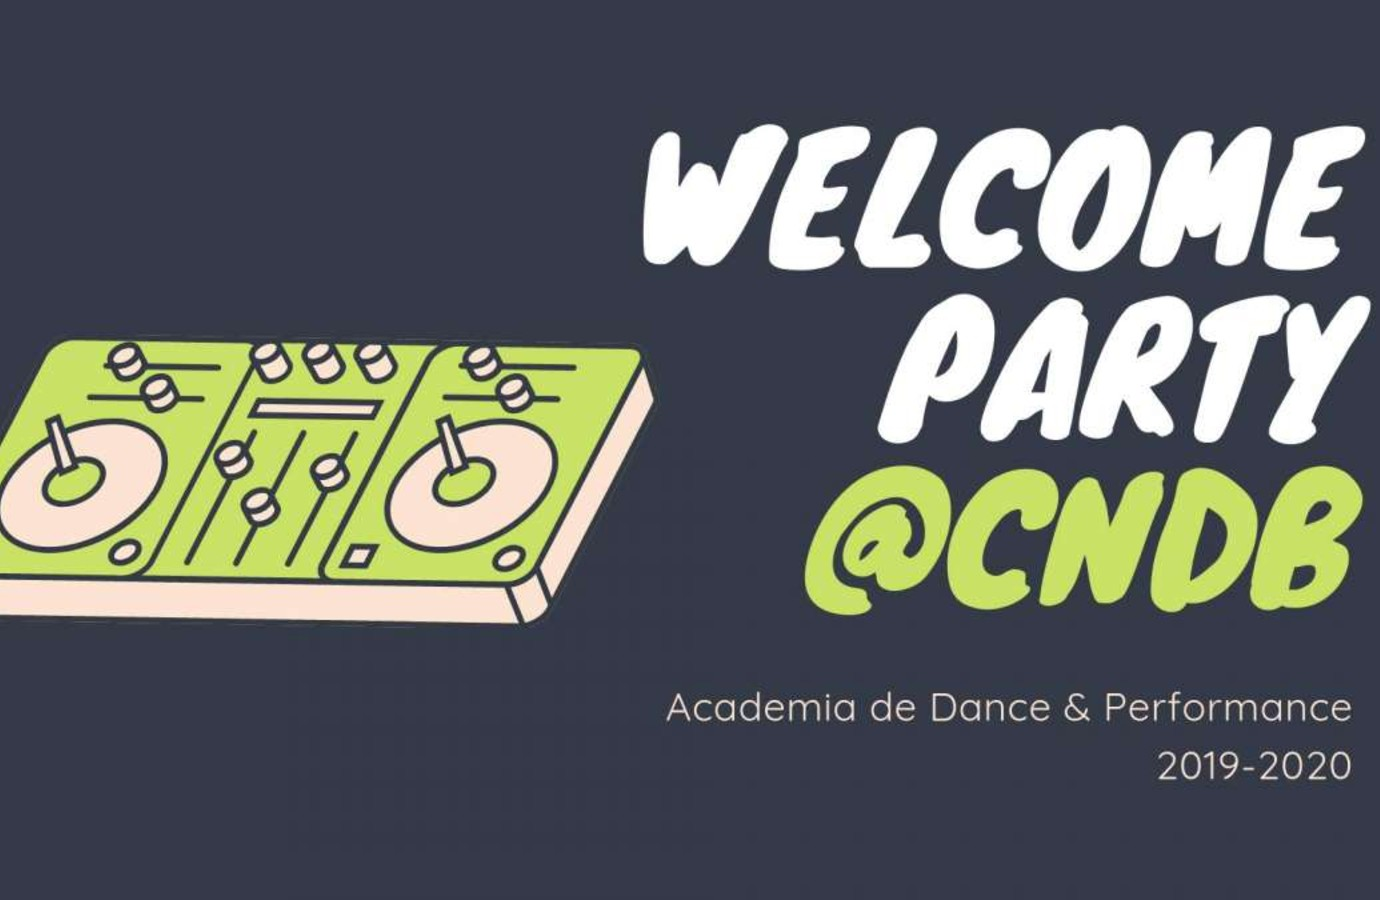 Welcome party Academia de dans & performance